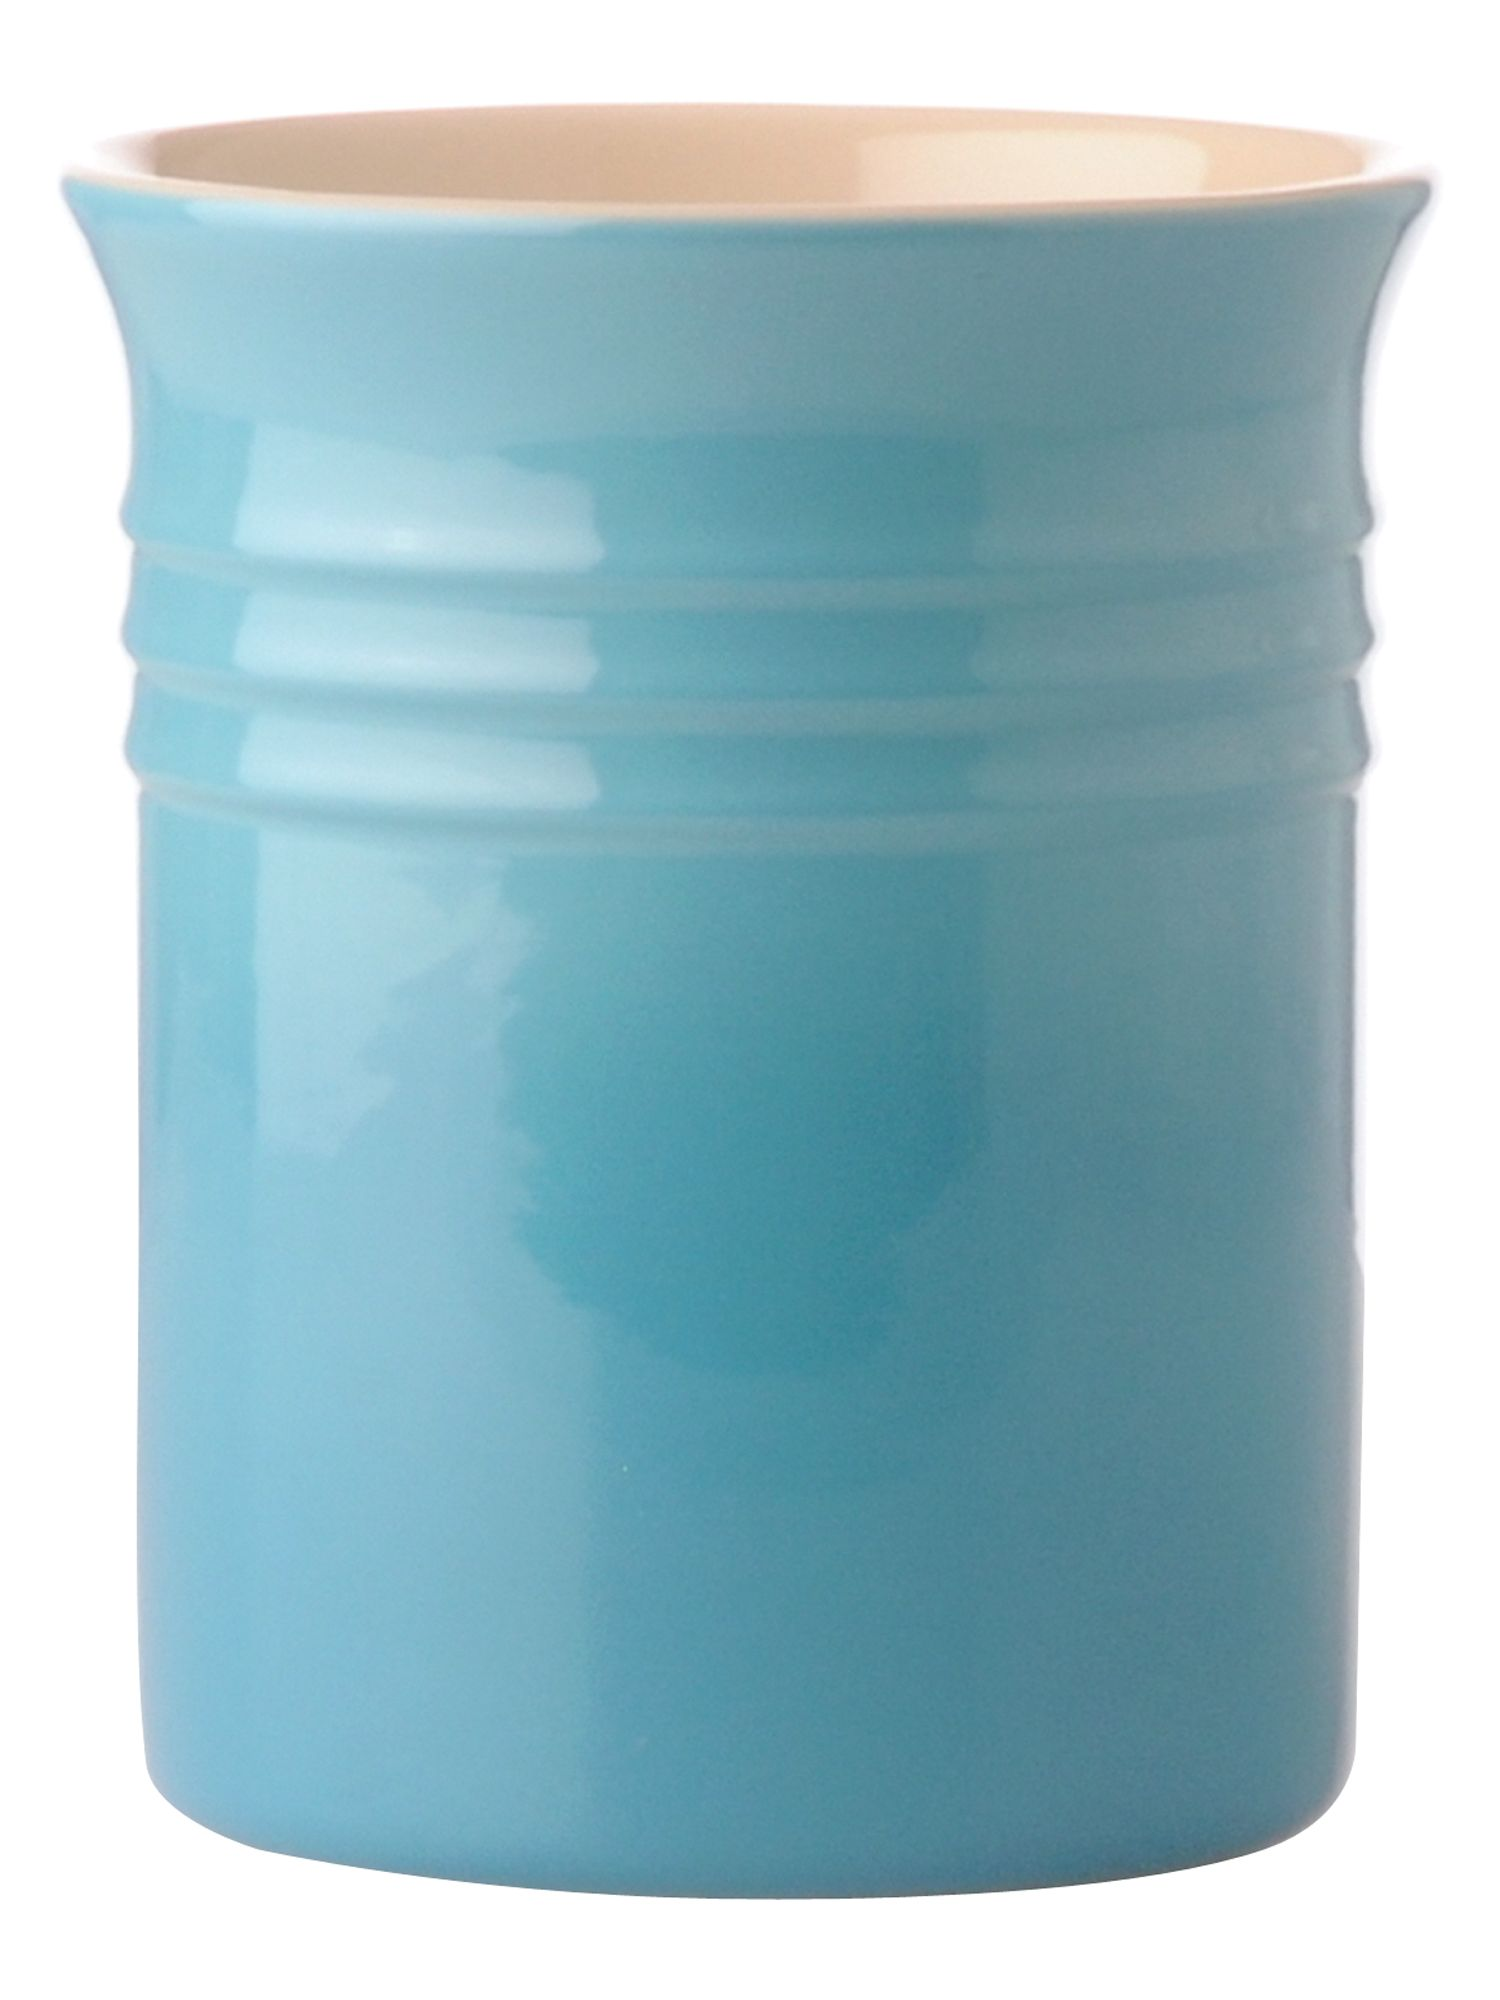 teal small utensil jar